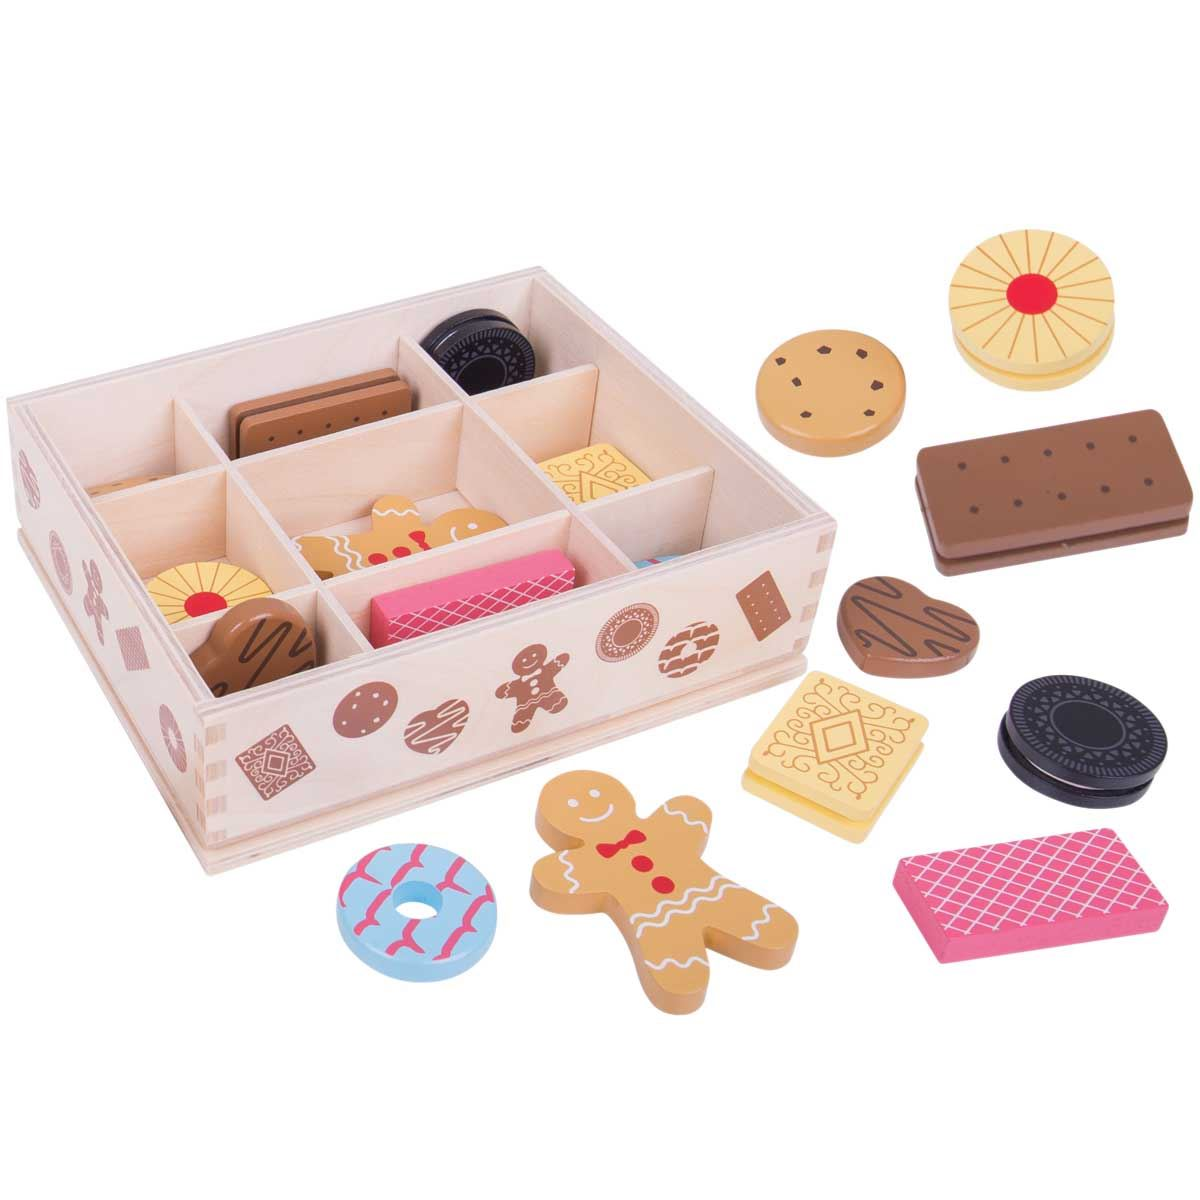 box of biscuits bigjigs bj470 wooden play food. Black Bedroom Furniture Sets. Home Design Ideas